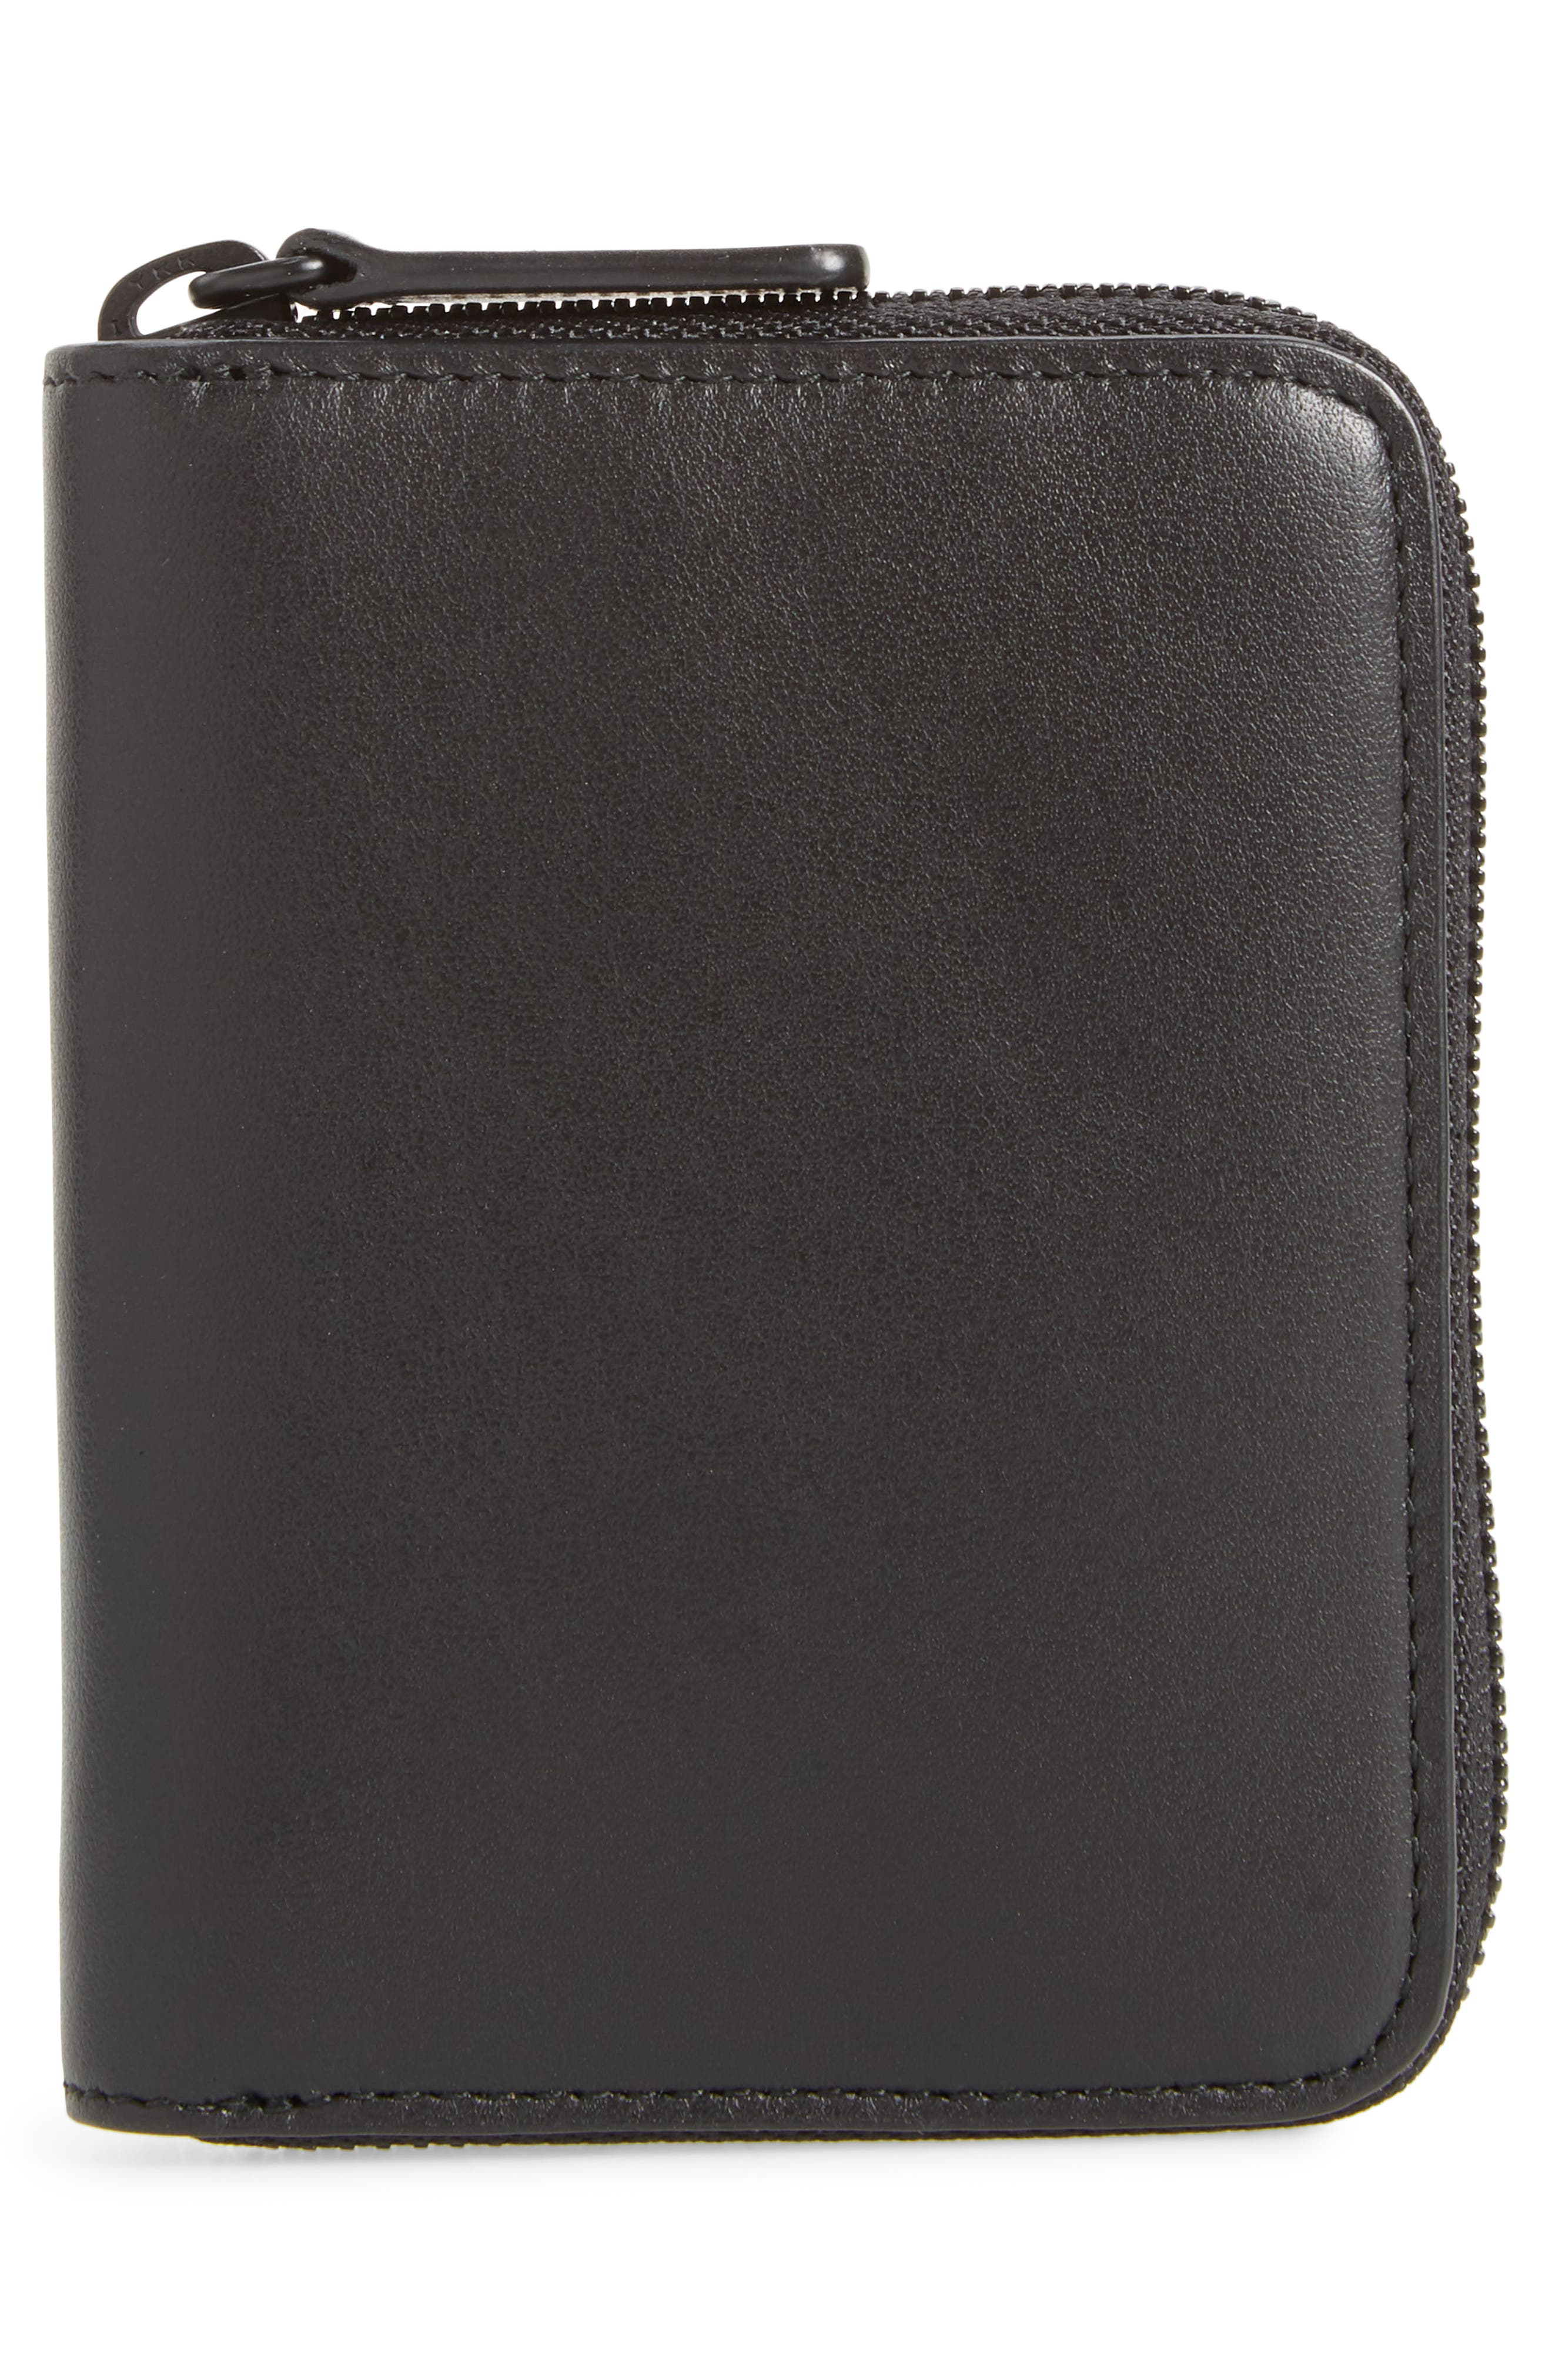 COMMON PROJECTS, Leather Coin Case, Alternate thumbnail 3, color, 001